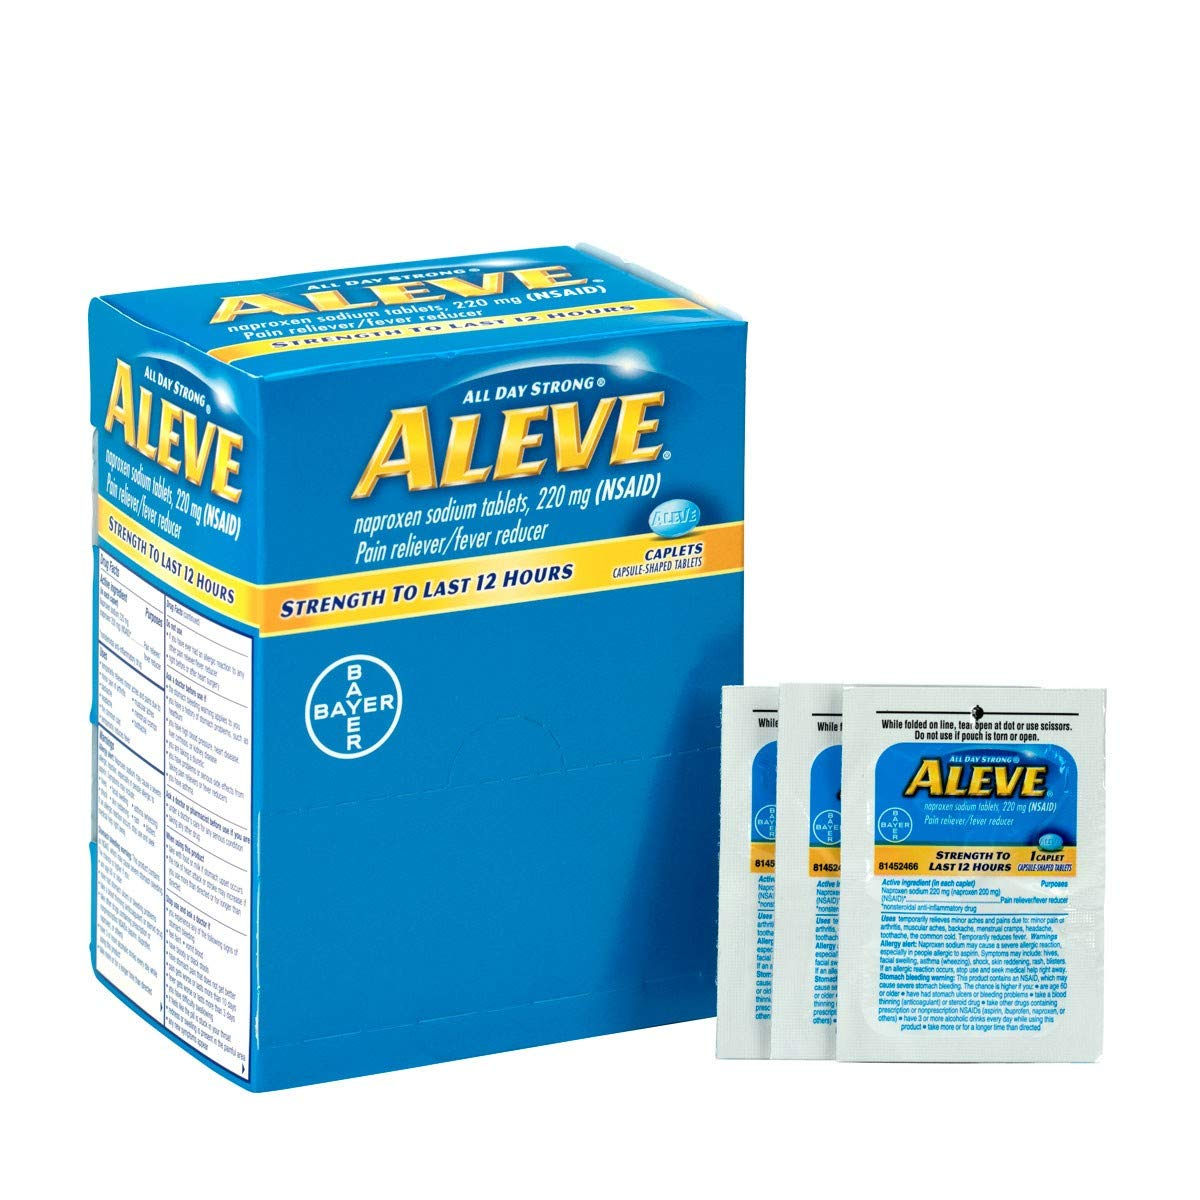 Aleve, 50x1/box | Aleve Naproxen Sodium Medication, 50 Packets of One Tablet by Brite Safety